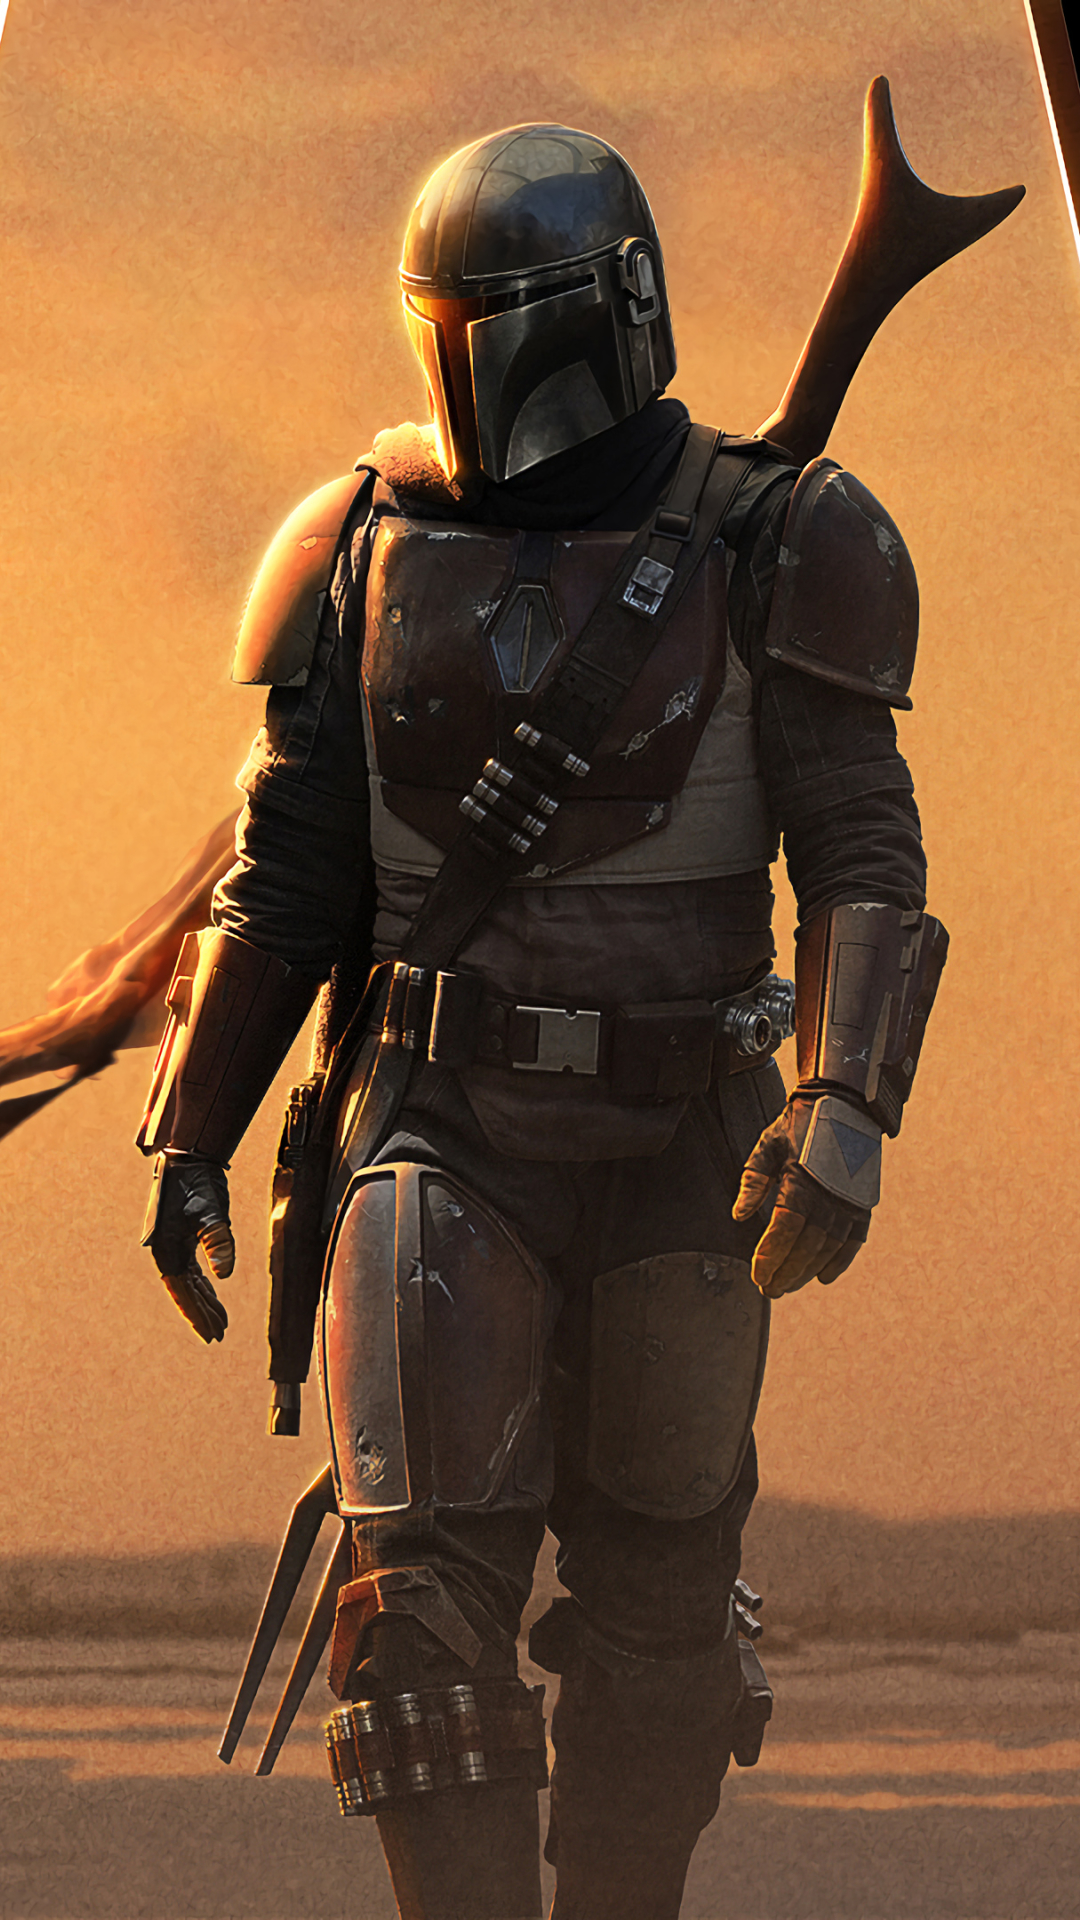 1080x1920 4k Poster Of The Mandalorian Iphone 7 6s 6 Plus And Pixel Xl One Plus 3 3t 5 Wallpaper Hd Tv Series 4k Wallpapers Images Photos And Background